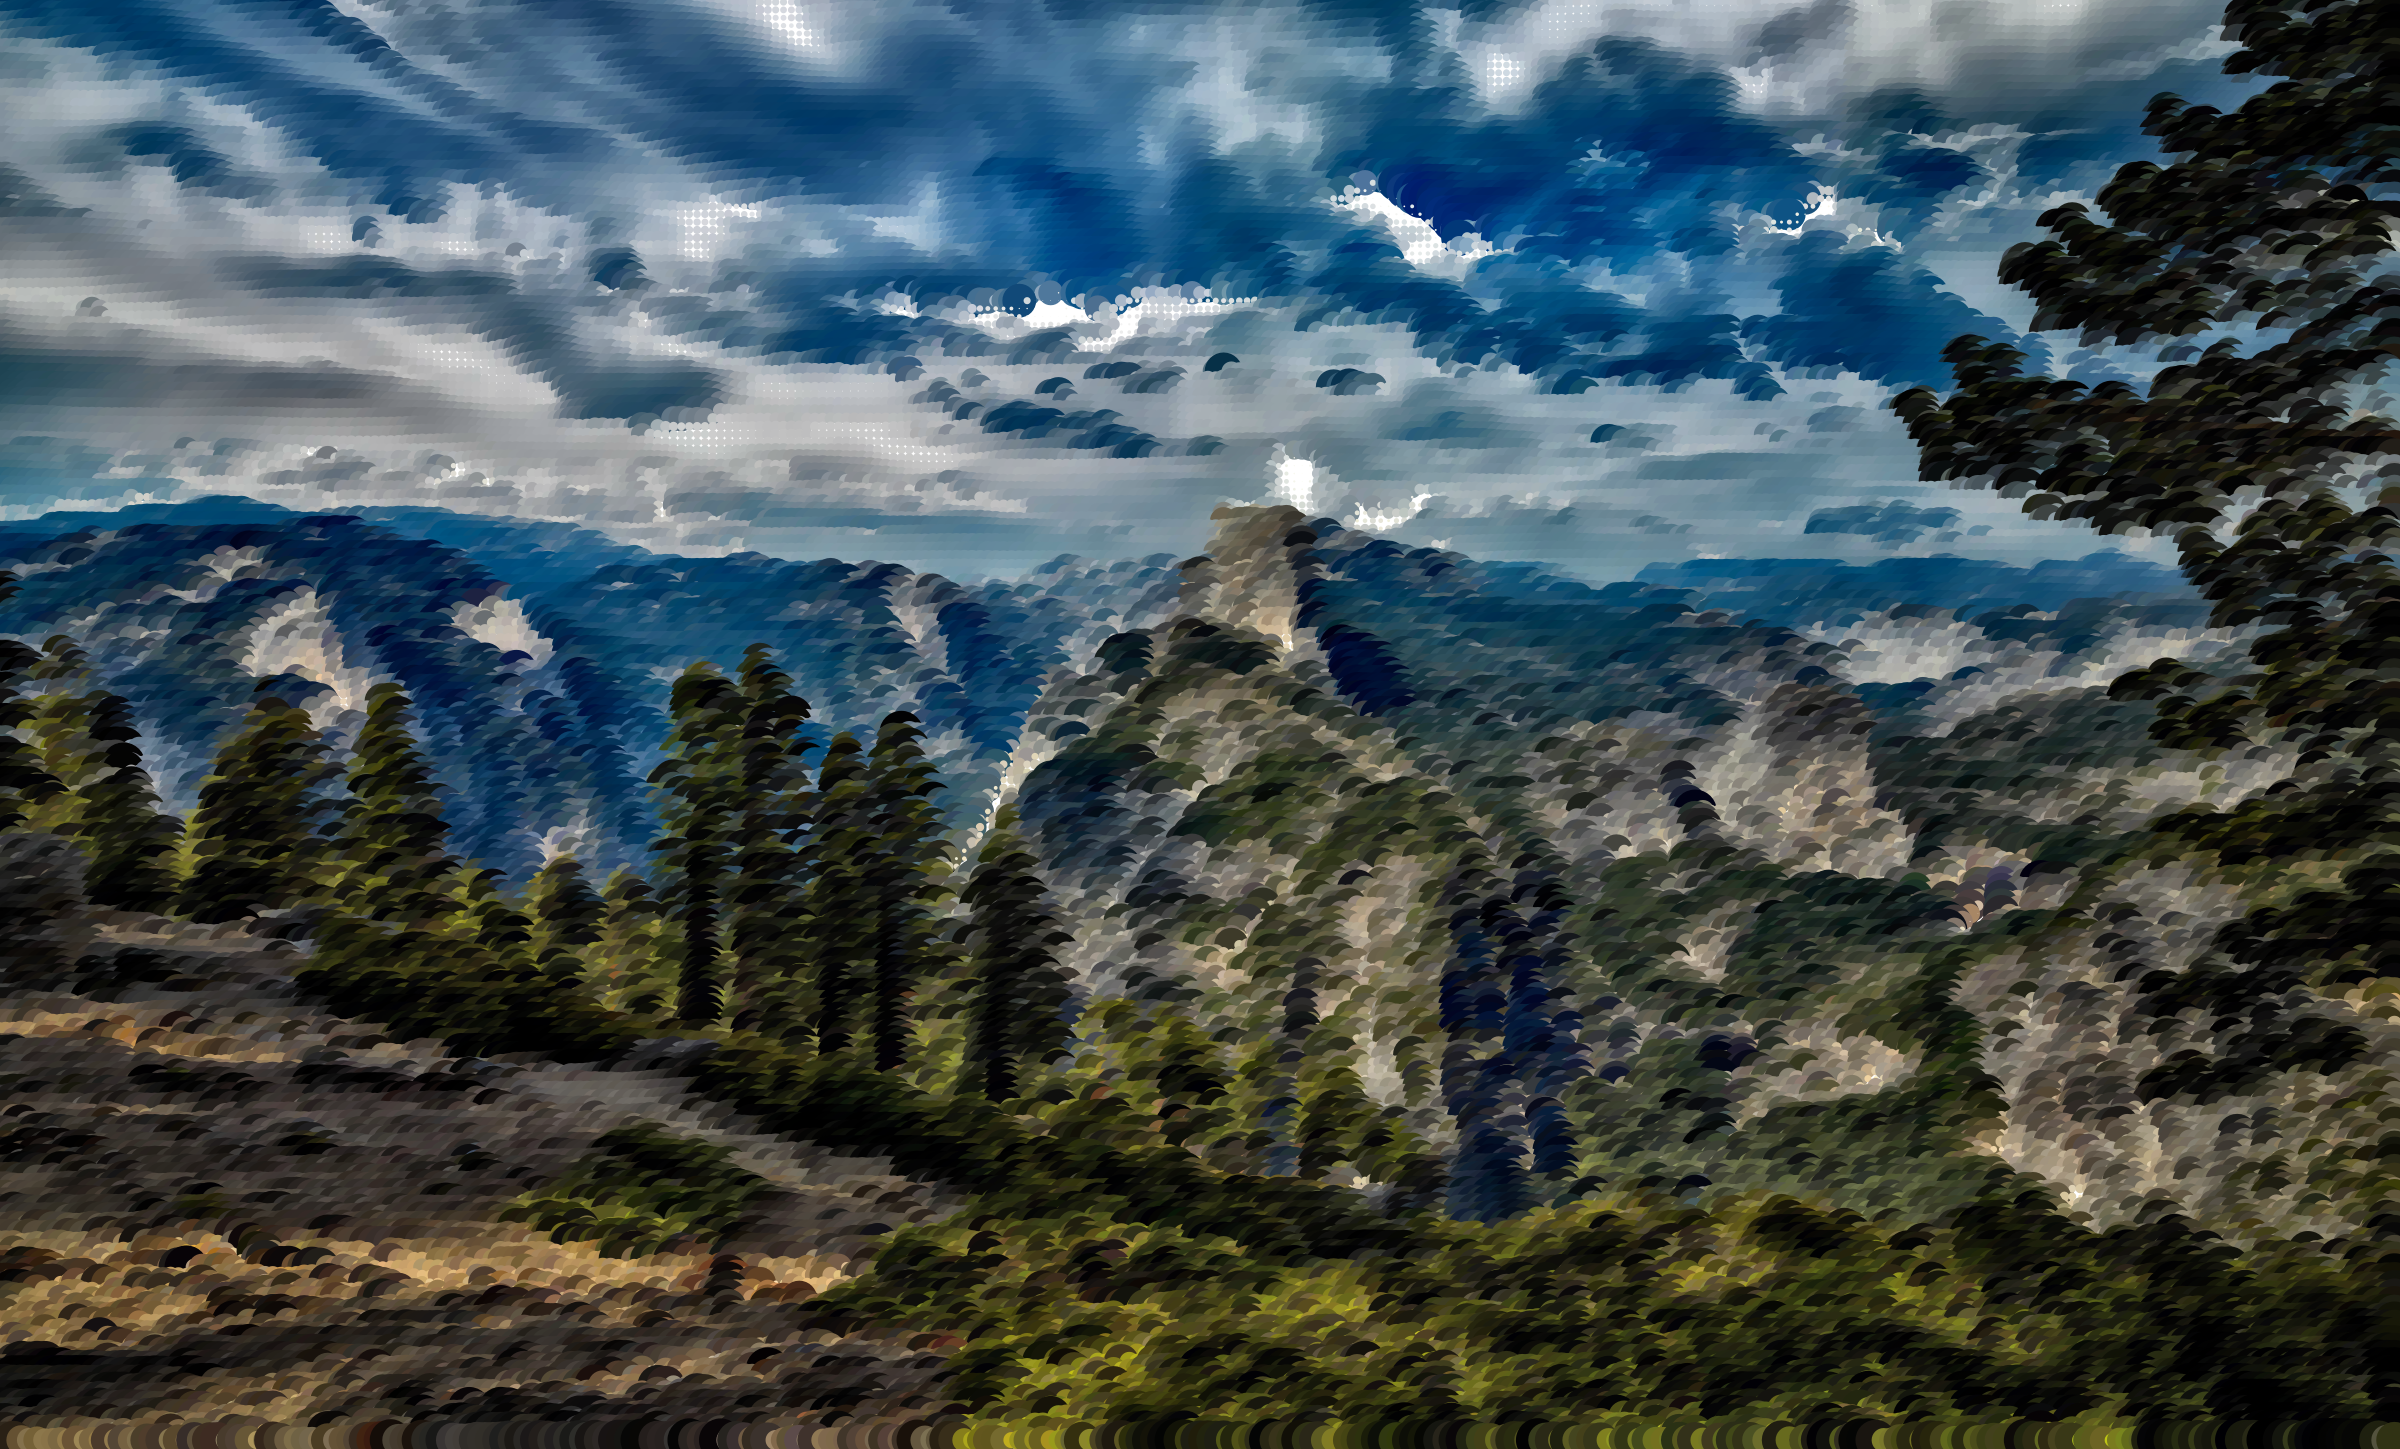 Surreal Yosemite by GDJ